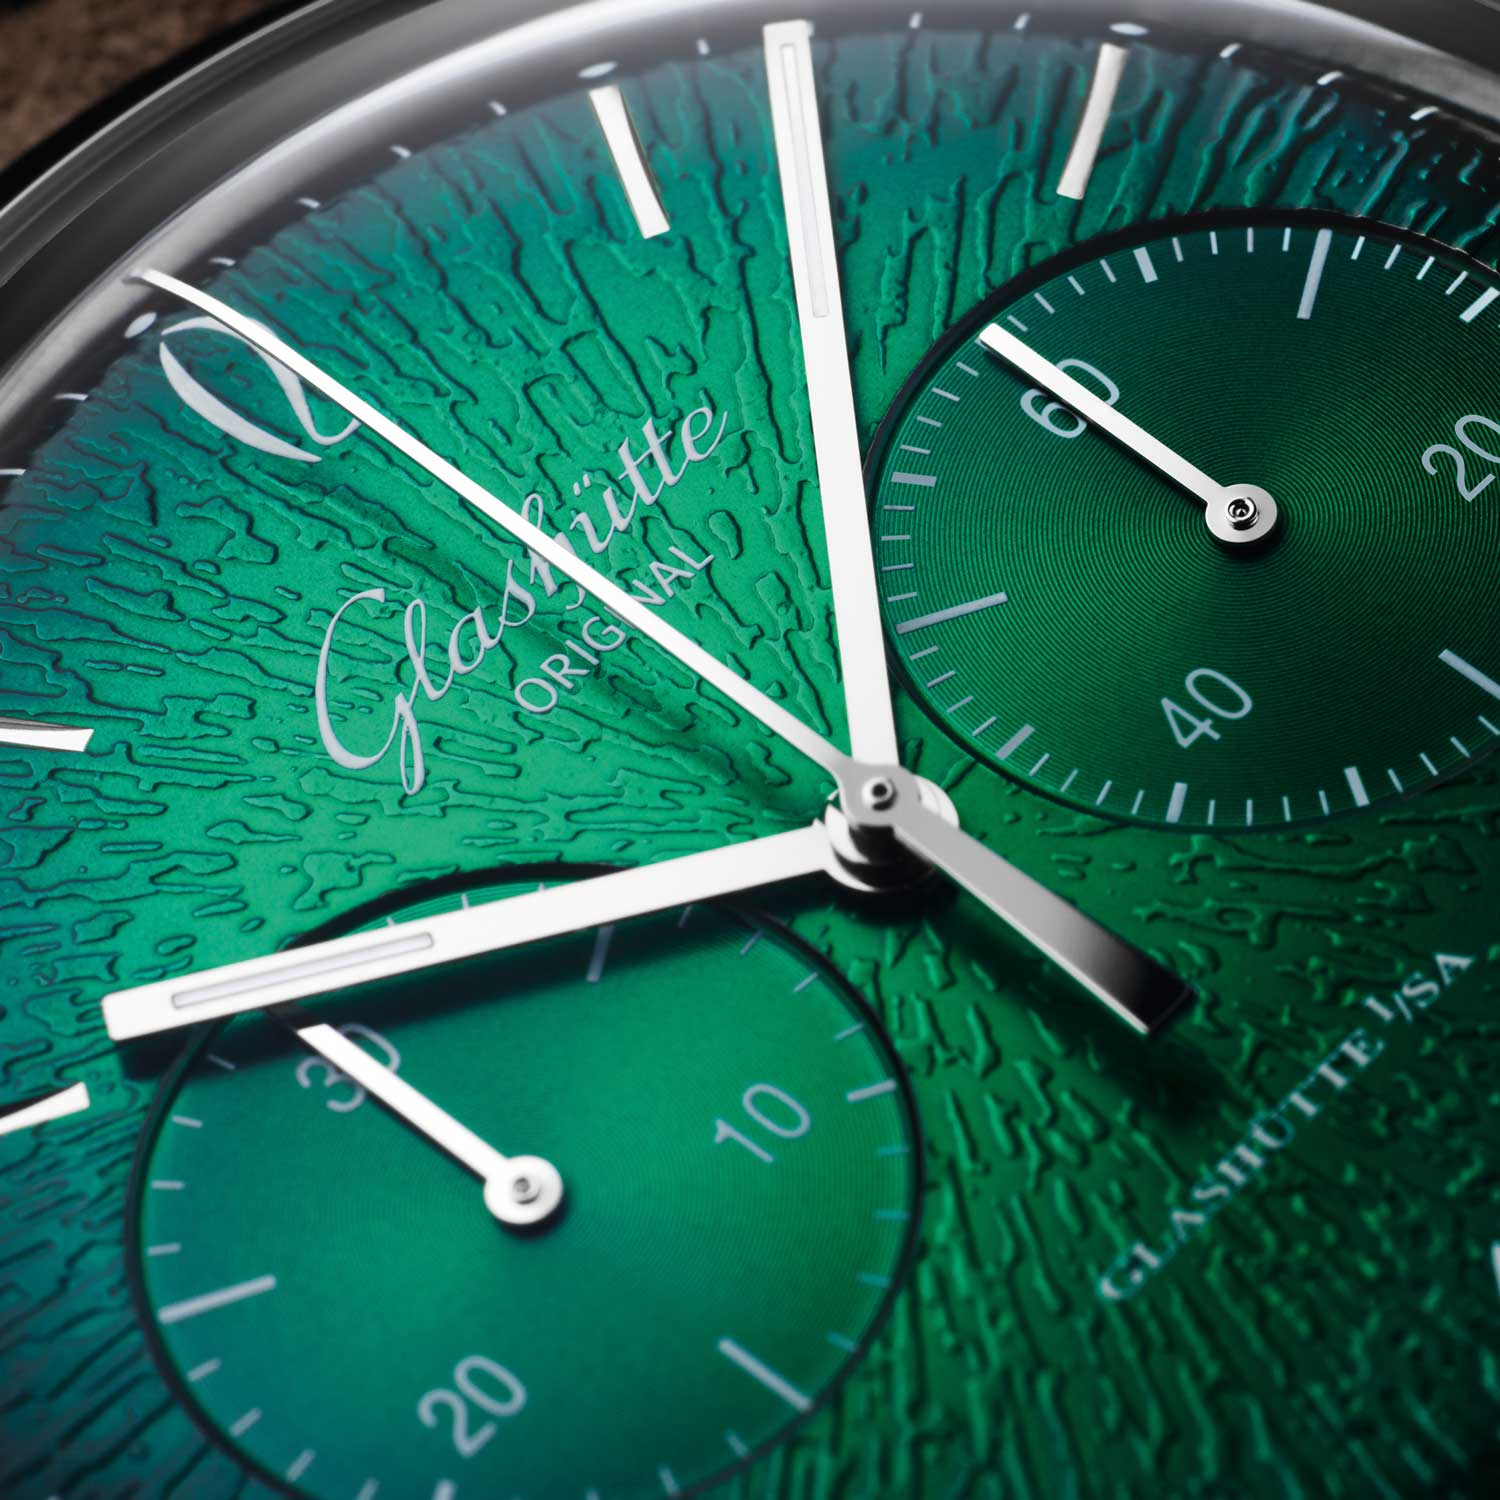 The raised guilloche effect on the dial is achieved by means of a 60-ton press which impresses the eye-catching effect onto a brass blank.